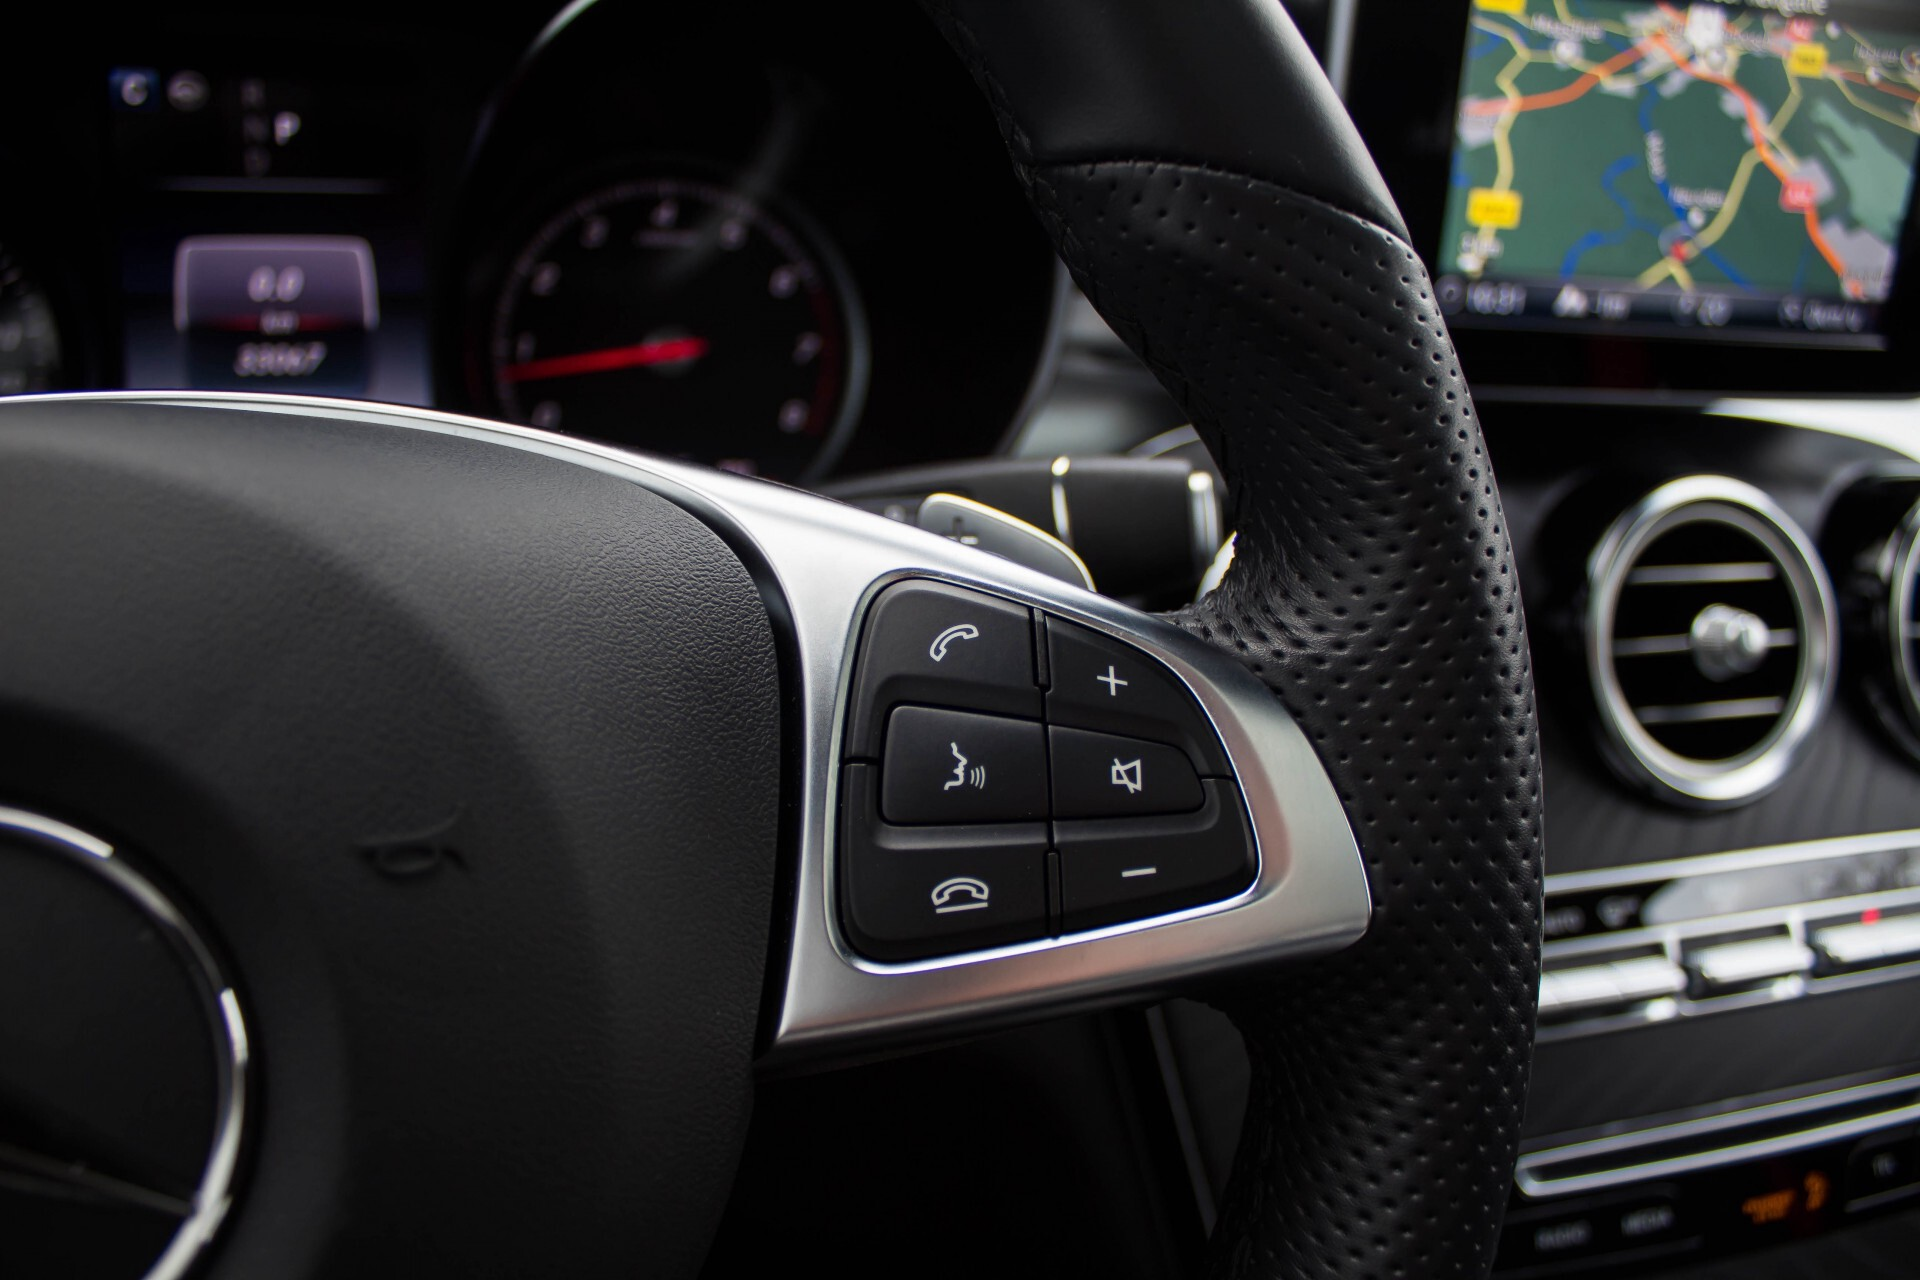 Mercedes-Benz GLC-Klasse 300 4-M AMG Panorama Distronic/Keyless/Burmester/Memory/Night Aut9 Foto 13